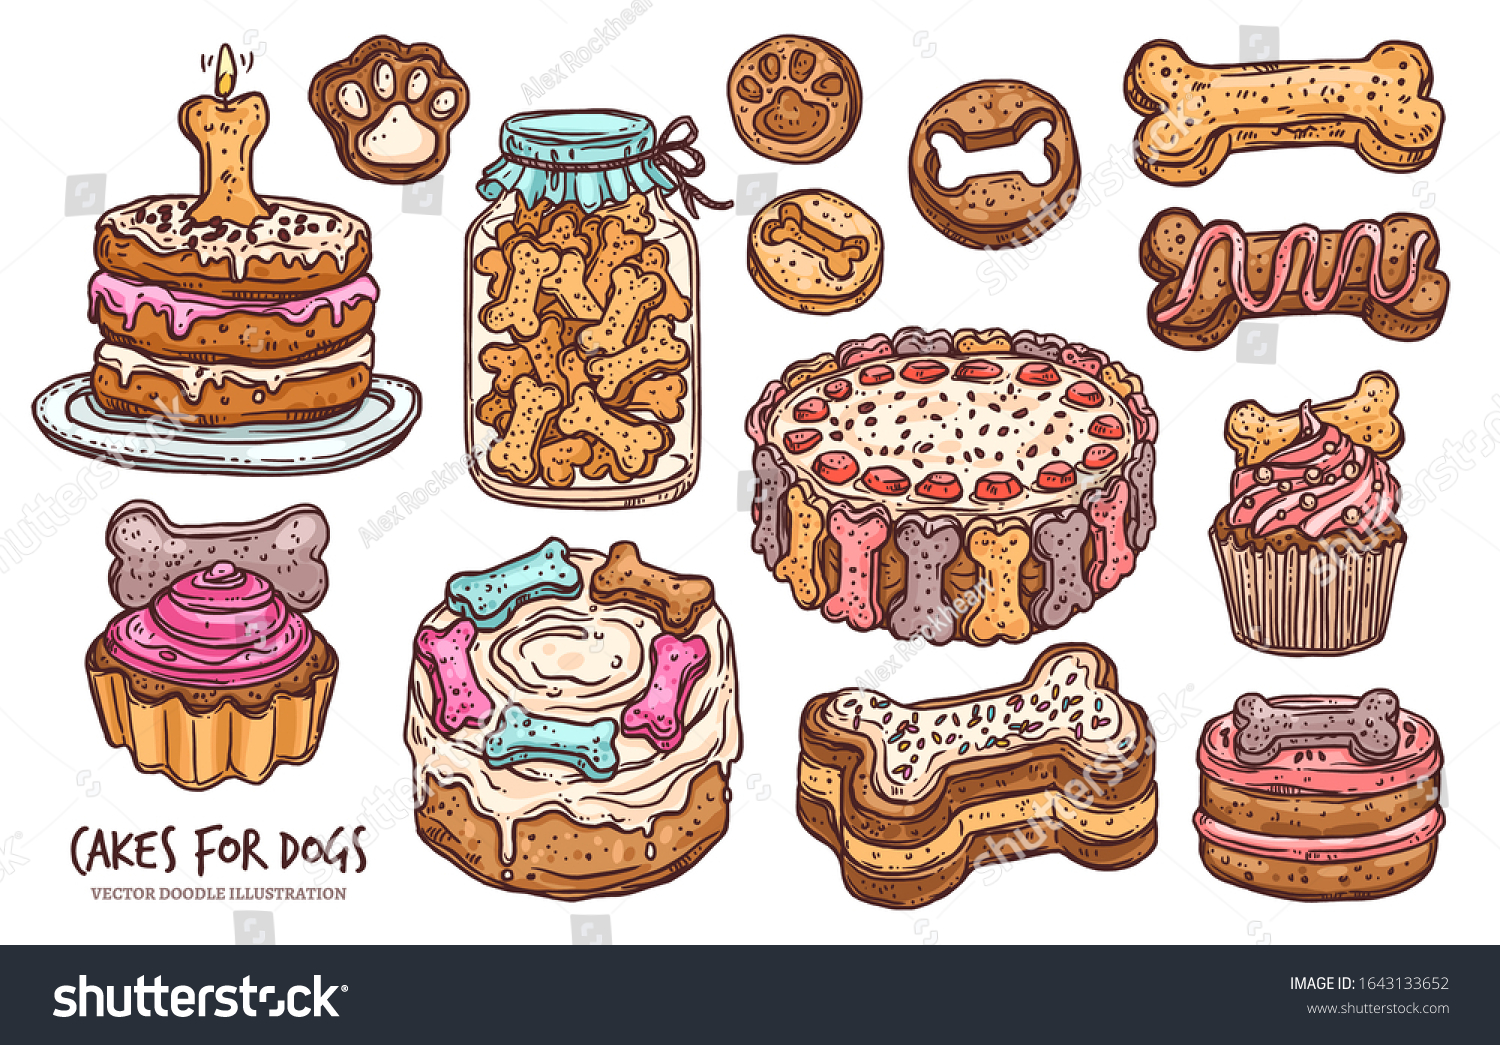 Outstanding Set Pastry Cookie Cakes Dog Anniversary Stock Vector Royalty Free Personalised Birthday Cards Veneteletsinfo